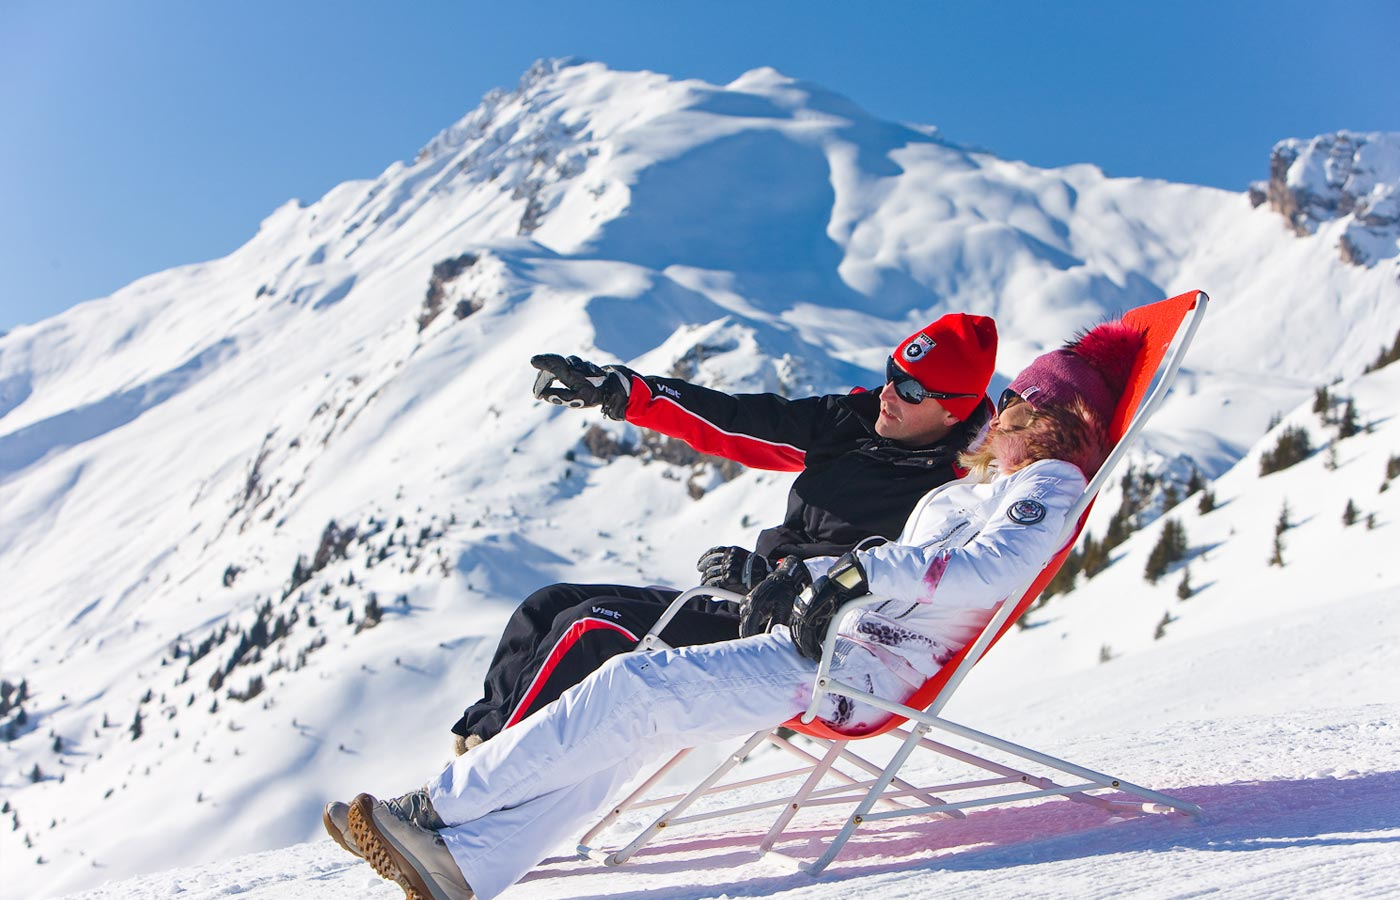 Couple sunbathing on loungers in the snow on the mountains